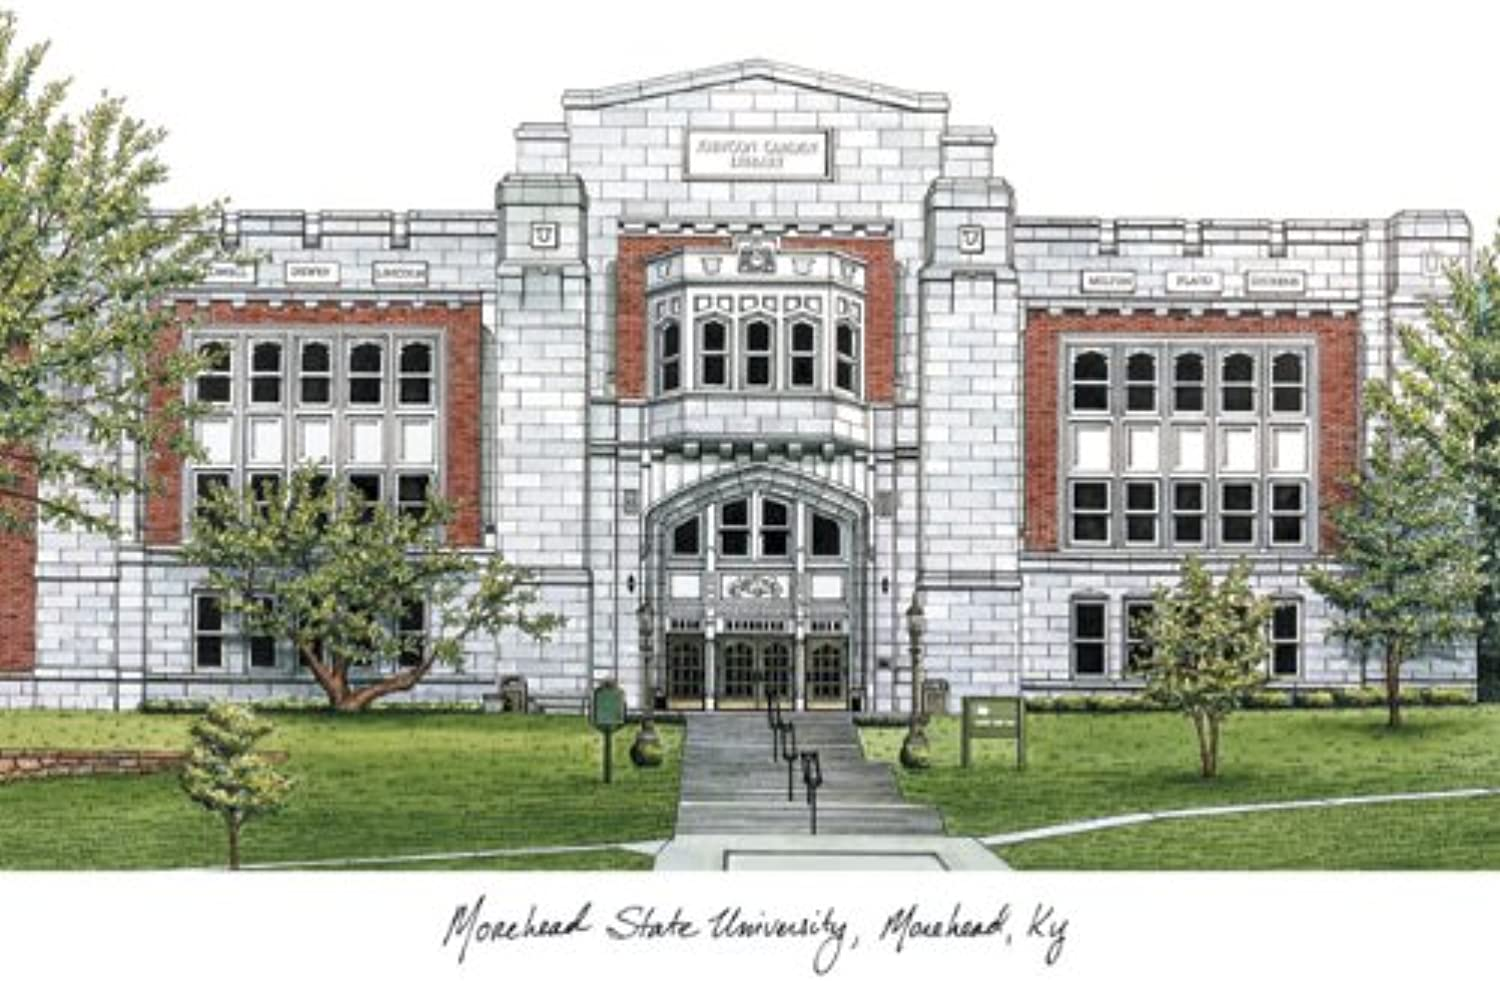 Campus Images KY985  Morehead State University  Lithographic Print